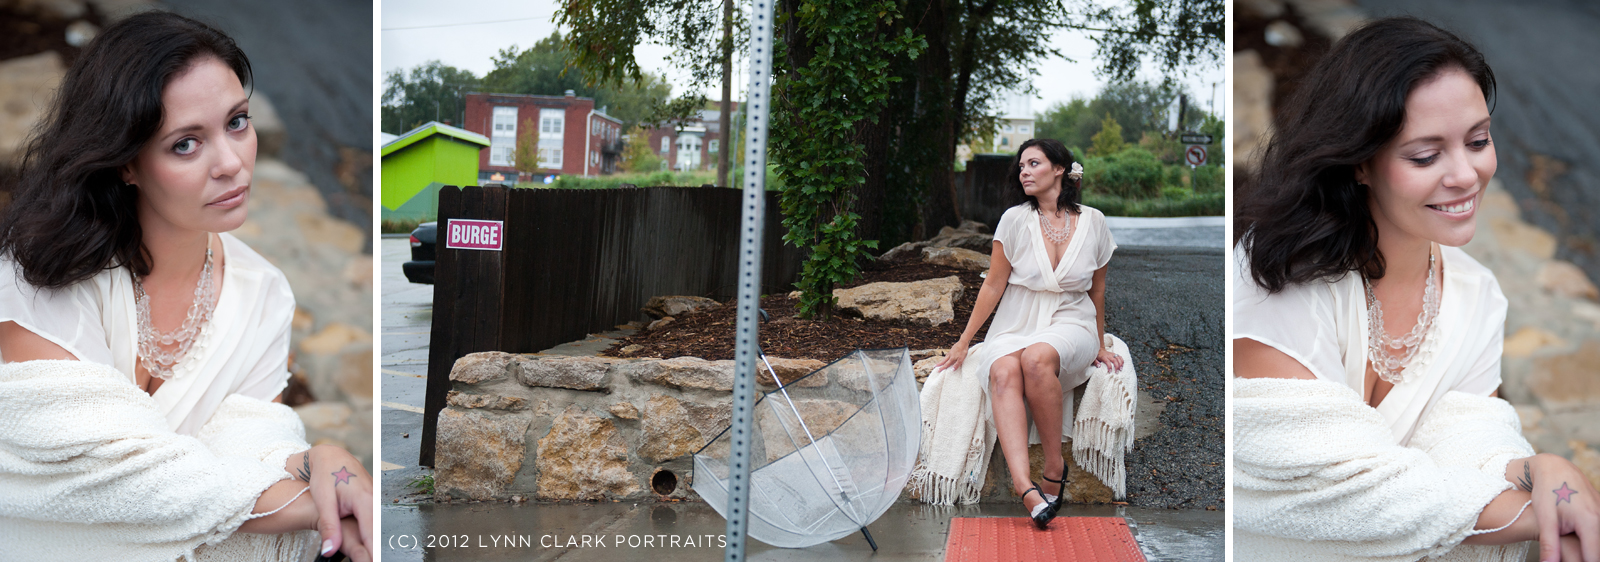 Outdoor boudoir photos can tell a great story.